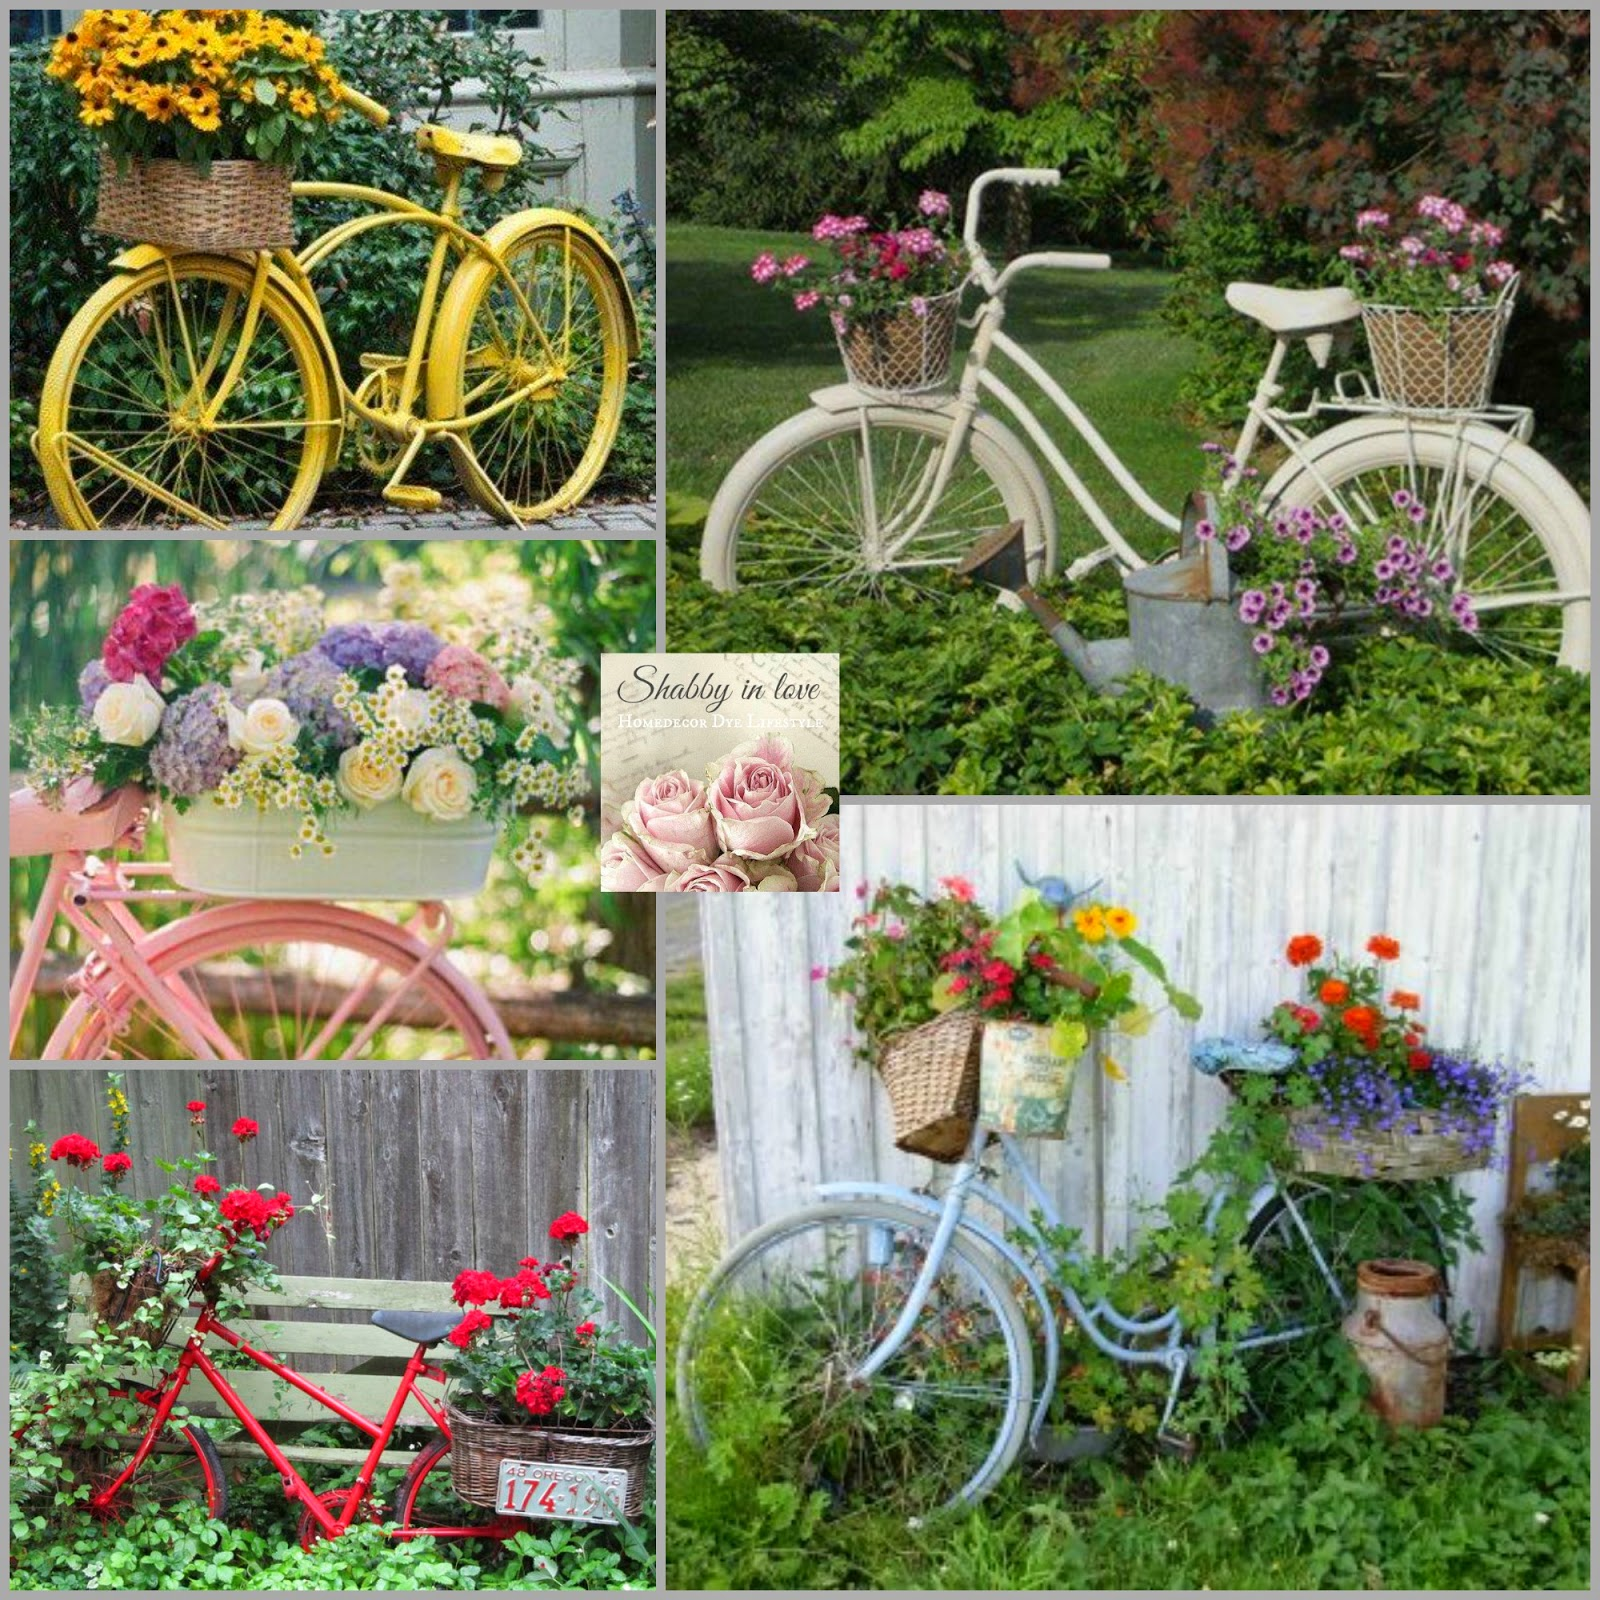 Shabby in love lovely garden container ideas for Love your garden designs